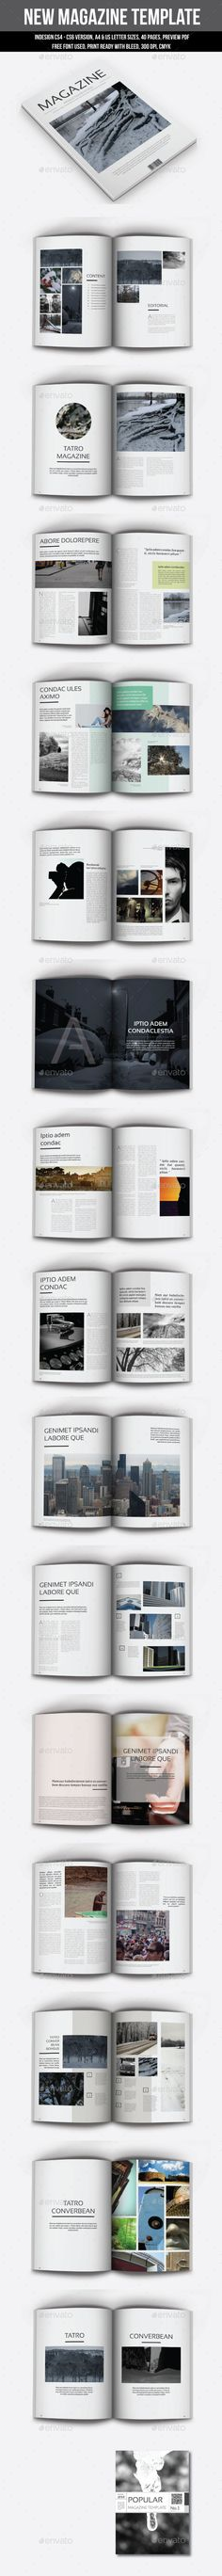 New Magazine Template — InDesign INDD #simple #print • Available here → https://graphicriver.net/item/new-magazine-template/9204704?ref=pxcr